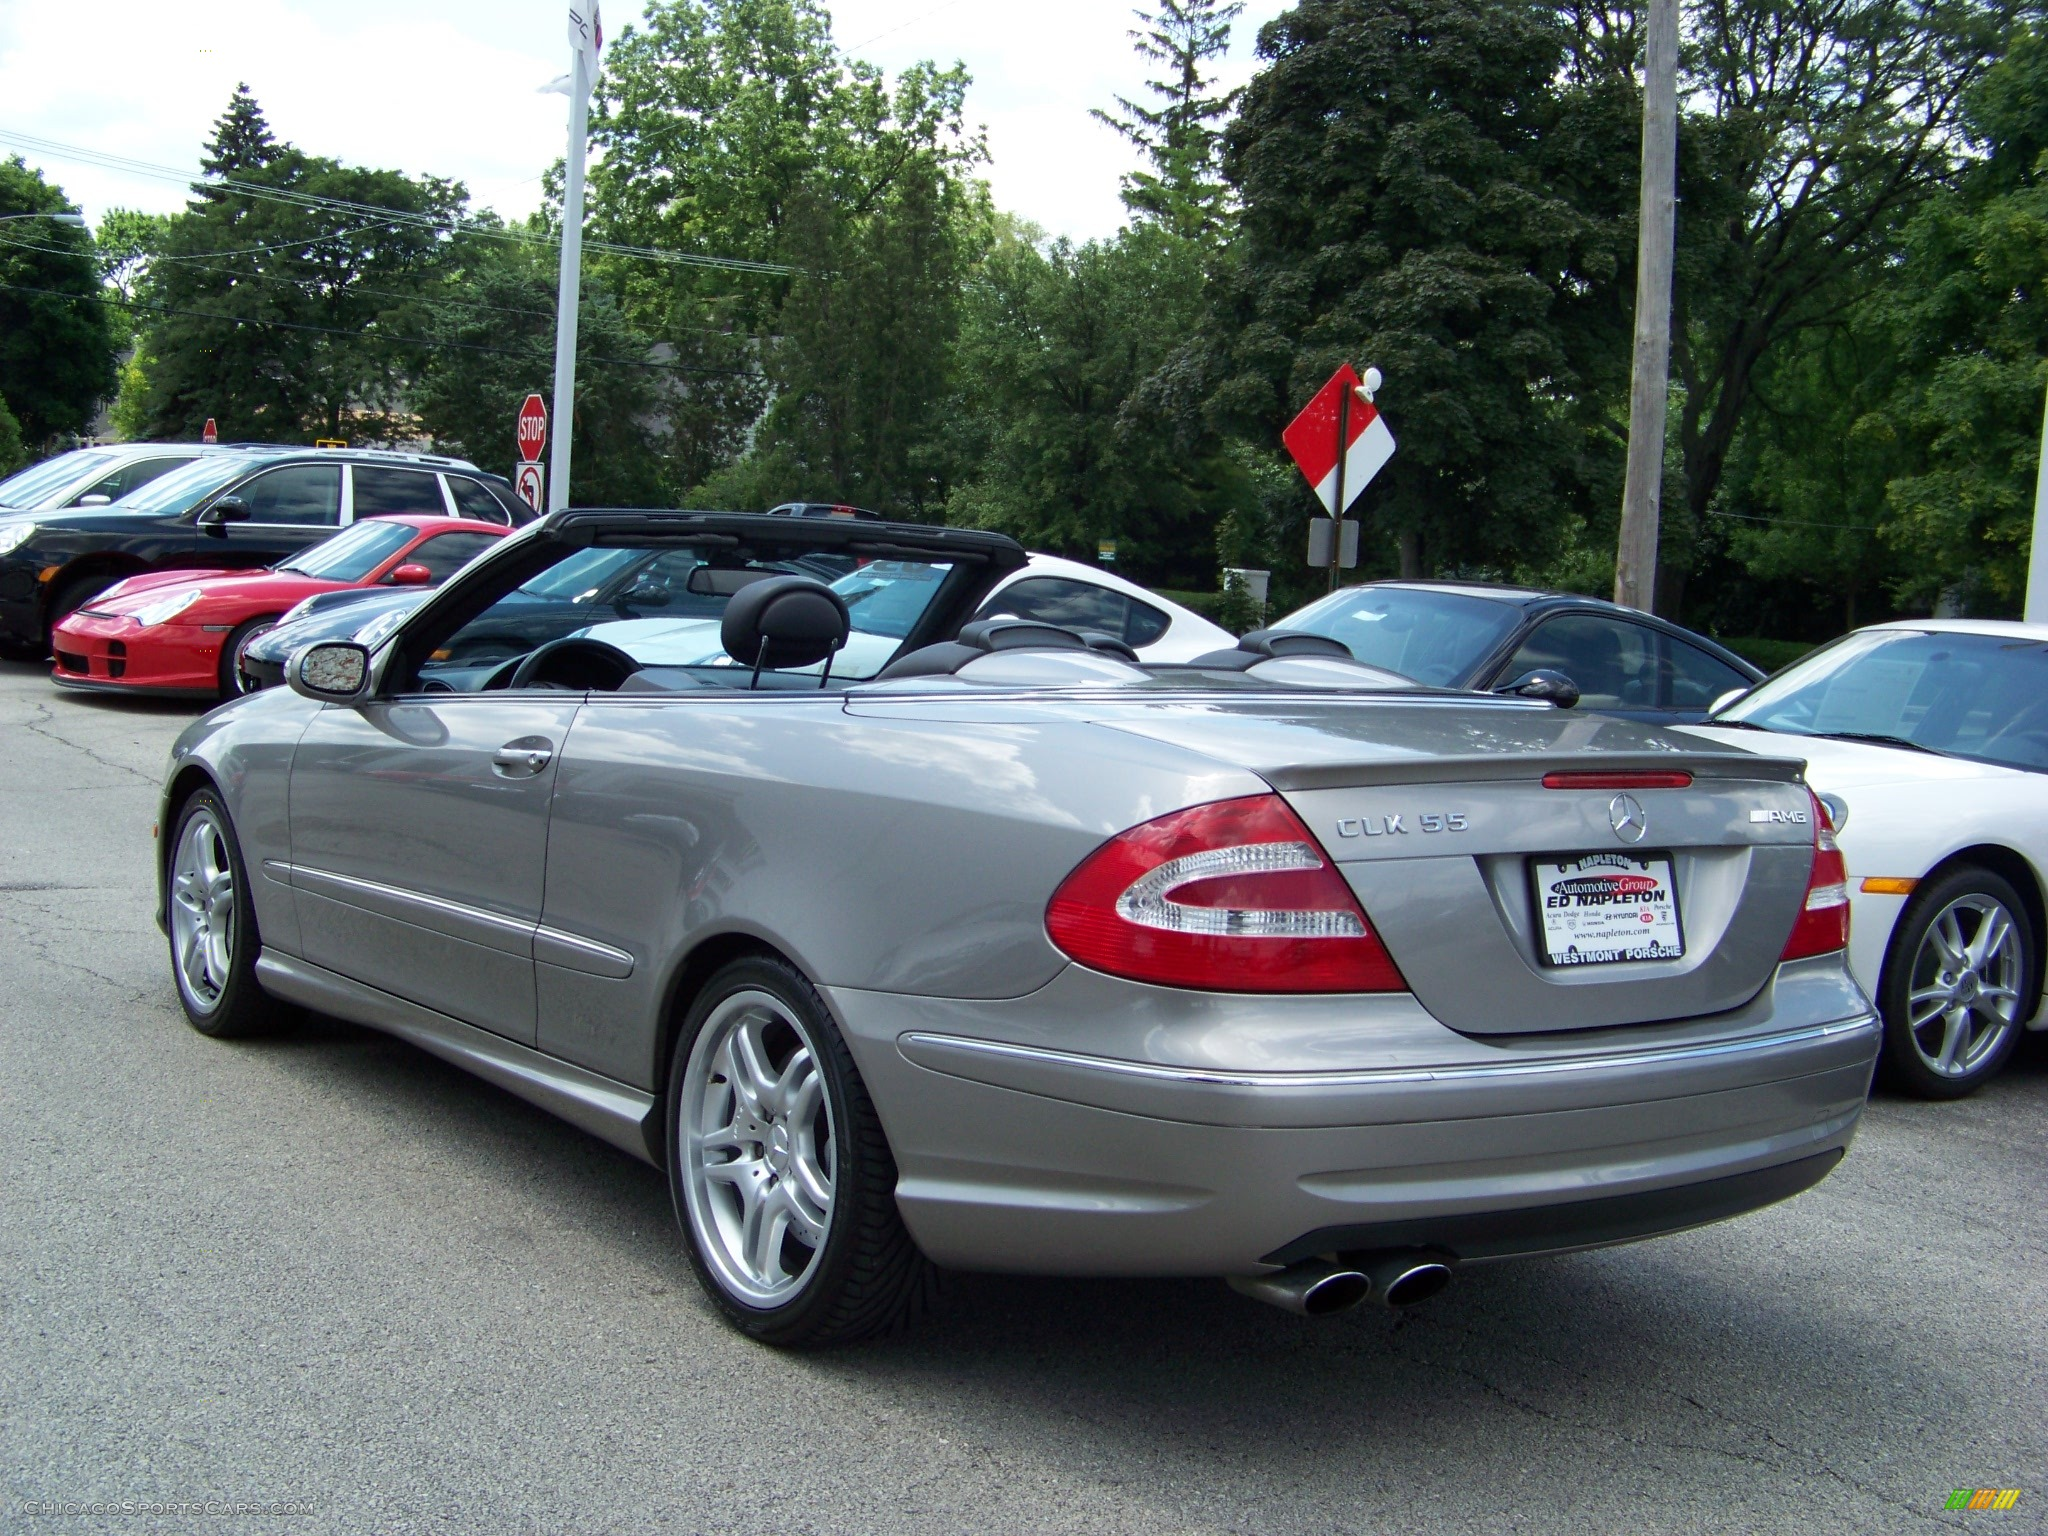 2005 mercedes benz clk 55 amg cabriolet in pewter metallic. Black Bedroom Furniture Sets. Home Design Ideas